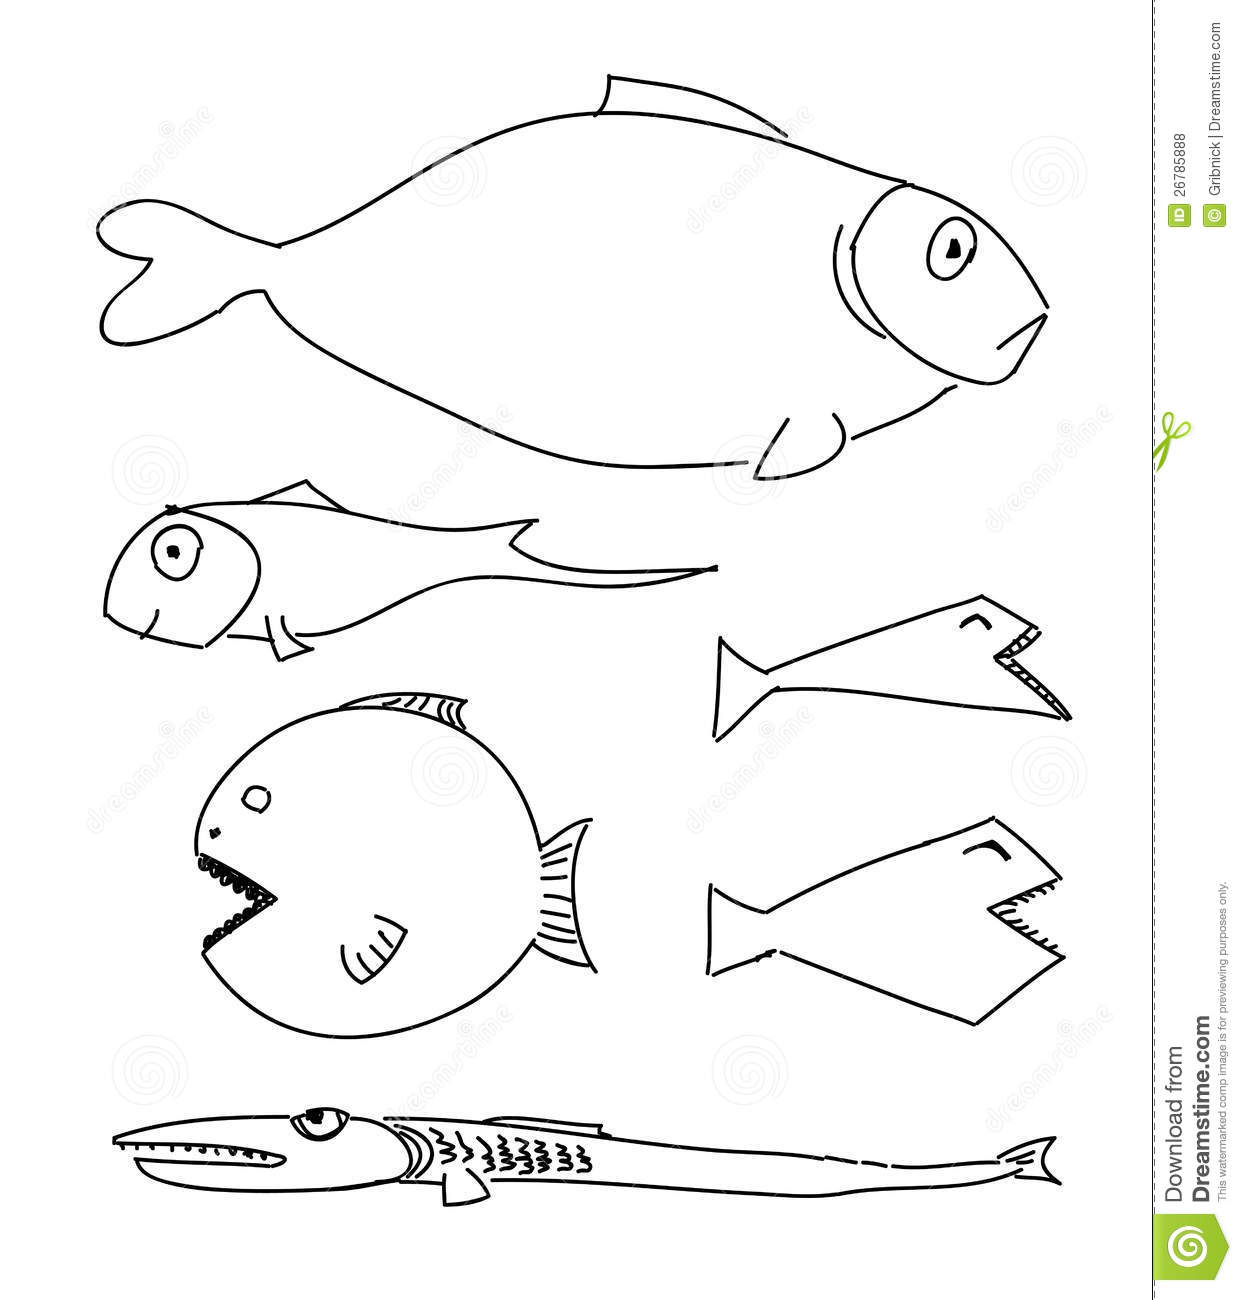 Humorous Drawing Fish Stock Vector Illustration Of Style